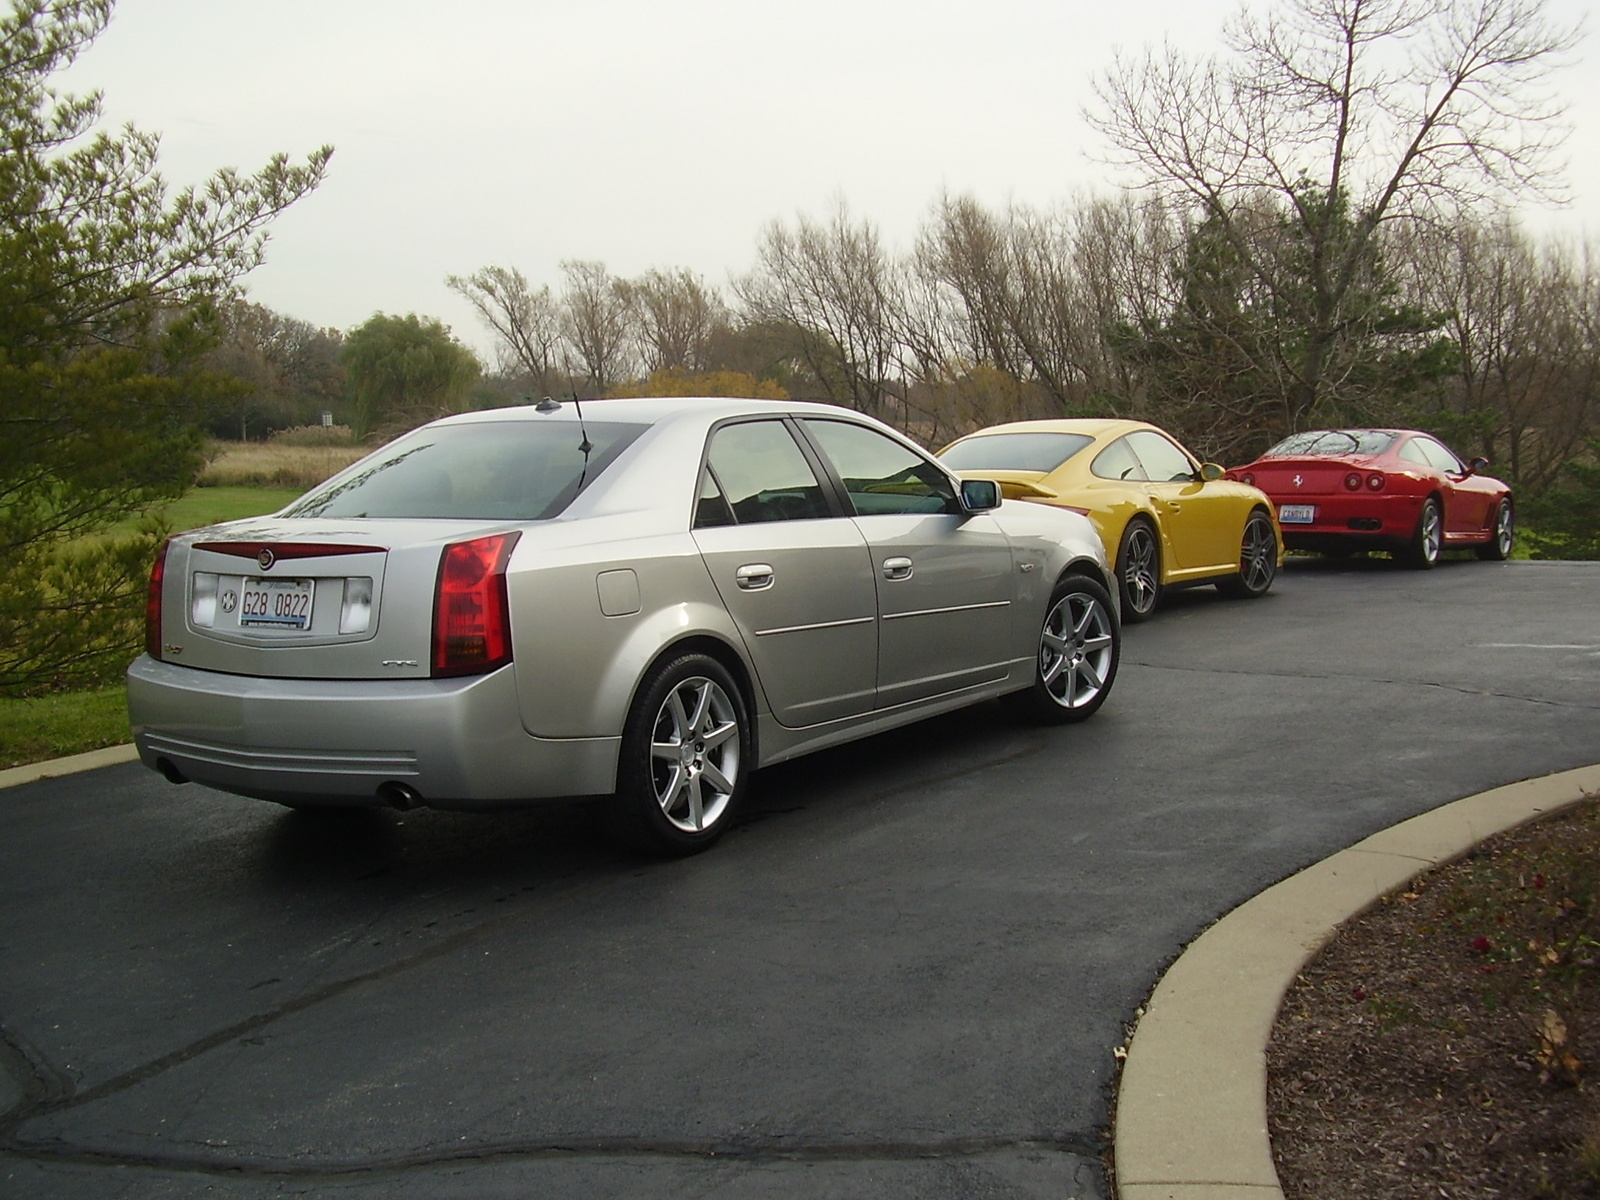 2004 Cadillac CTS-V - Pictures - CarGurus